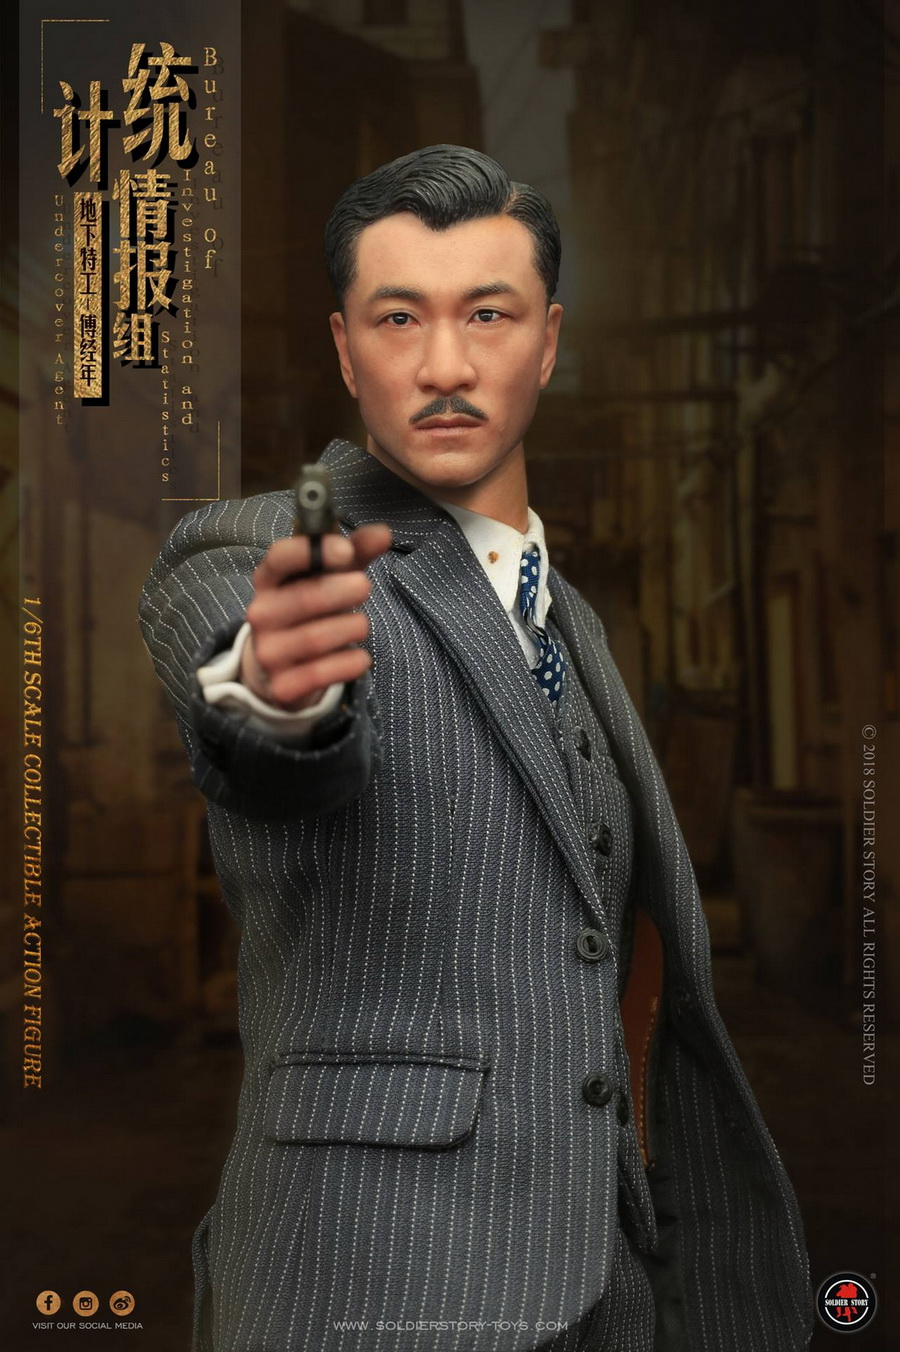 SoldierStory - NEW PRODUCT: SoldierStory new product: 1/6 World War II statistical intelligence group underground agent Fu Jingian - Shanghai 1942 (SS113#) 1455